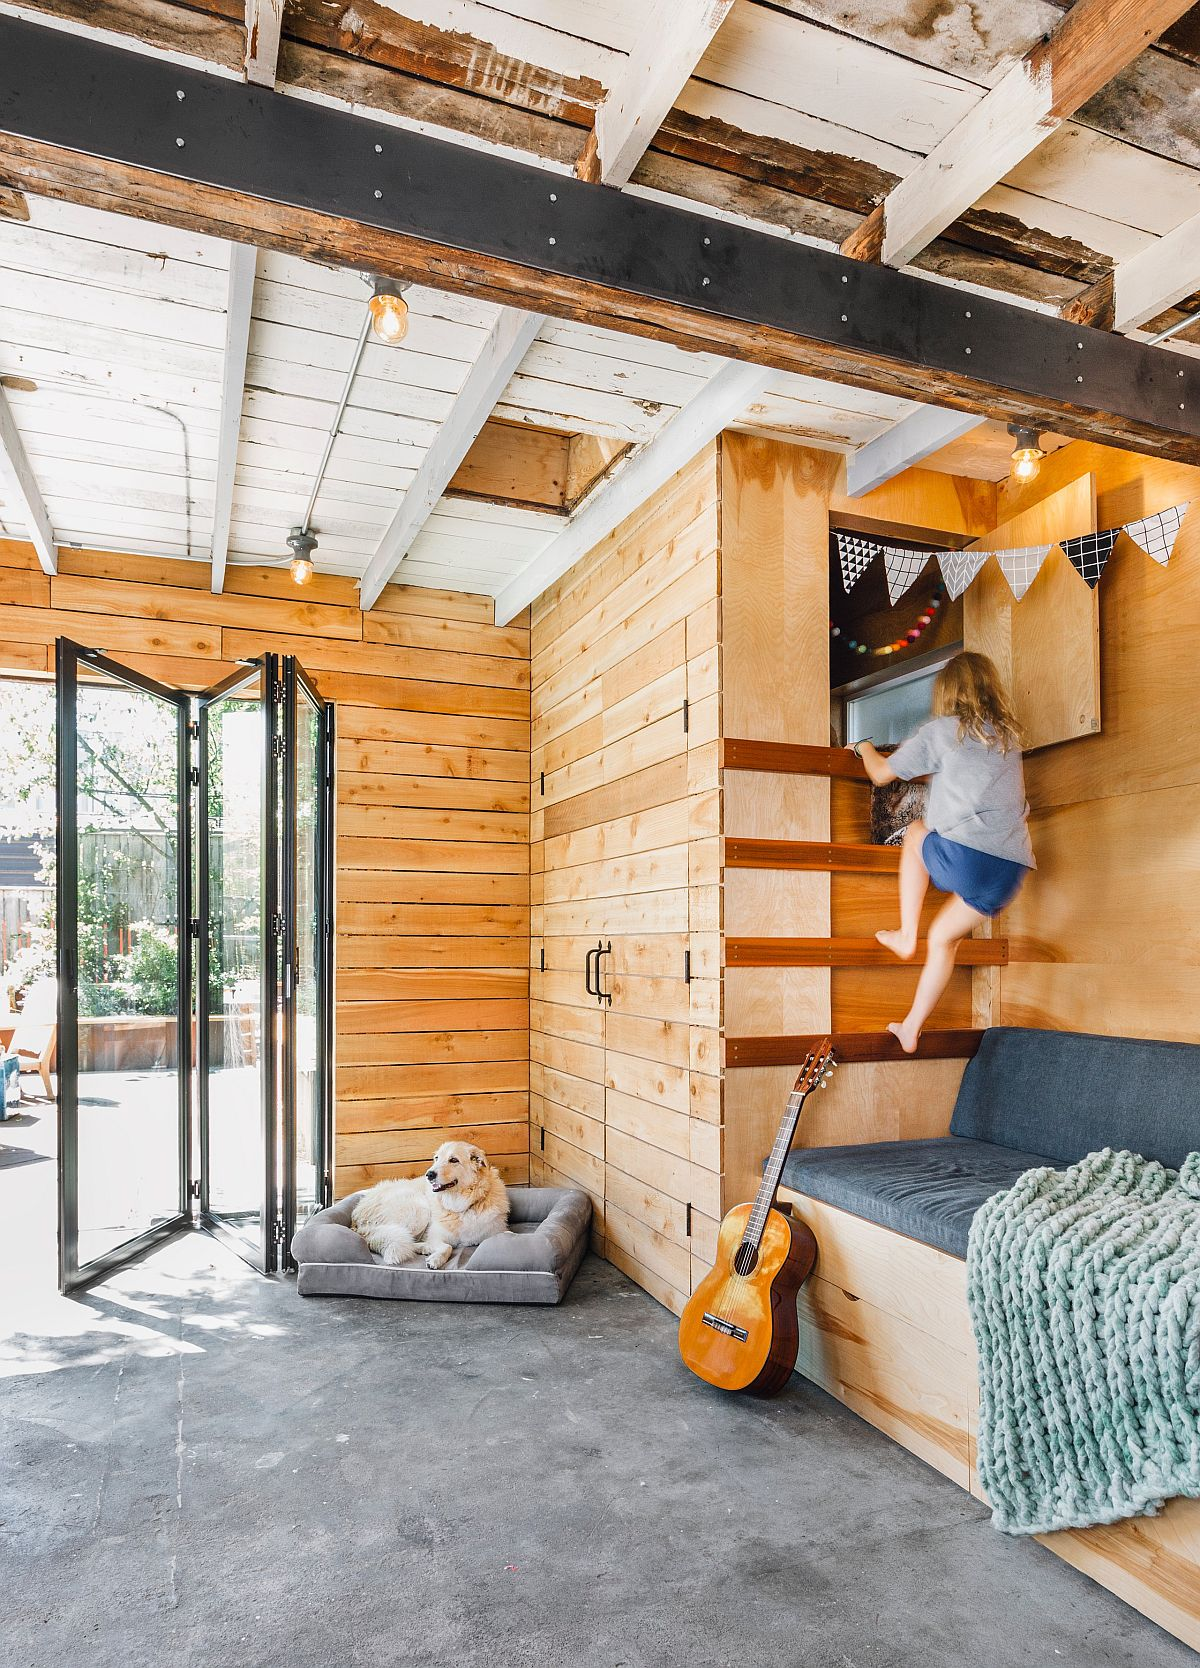 Think-of-vertical-space-to-create-custom-and-cozy-play-zones-that-give-kids-privacy-they-need-79171